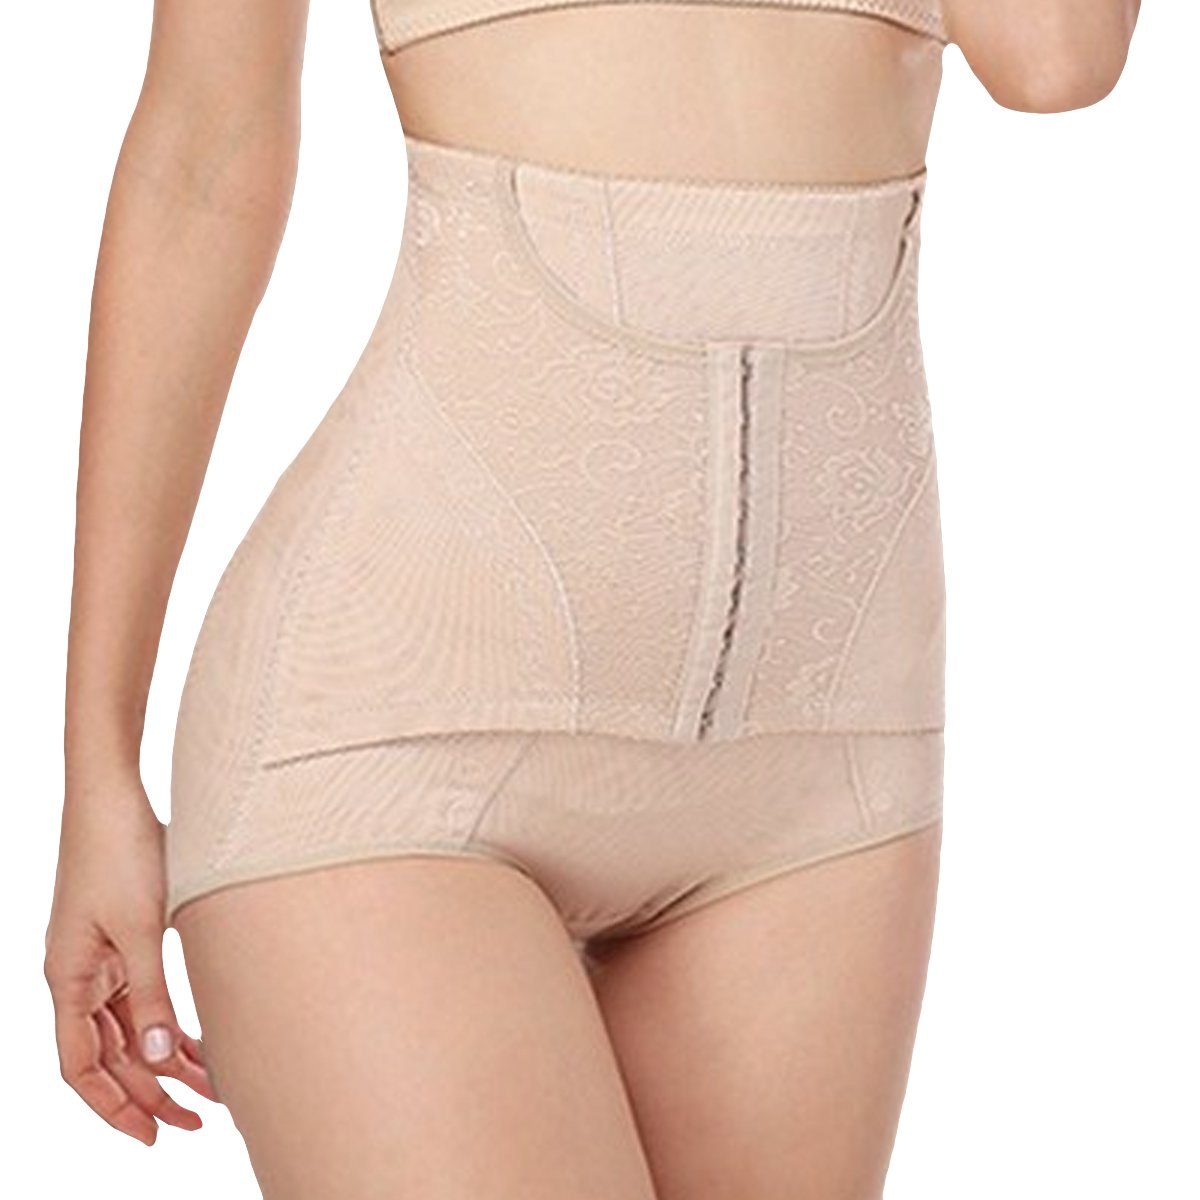 Aivtalk Postpartum Support Girdle Waist Tummy Control Panty with Adjustable Hook